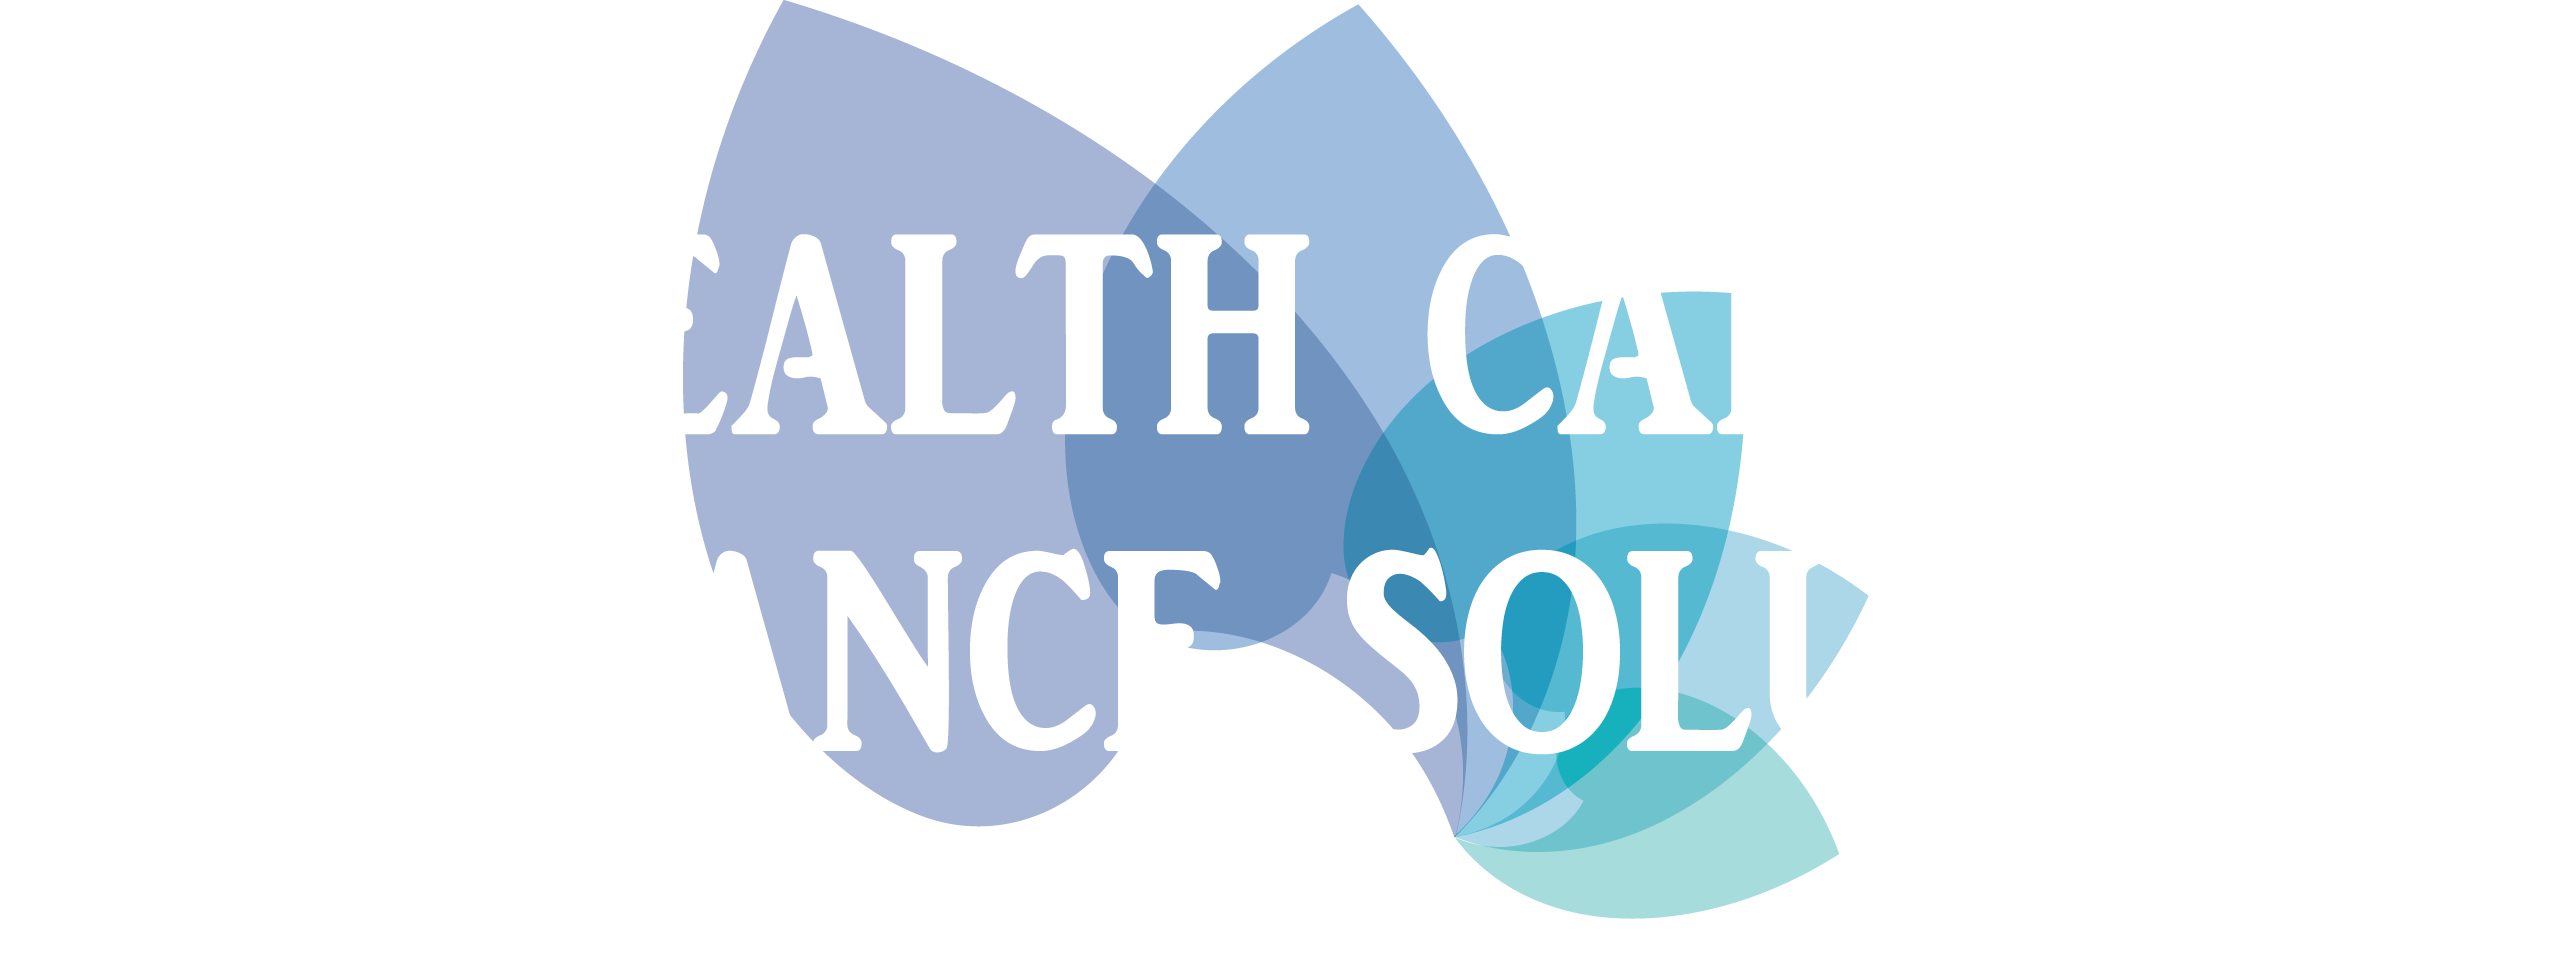 Healthcare credentialing solutions provides Insurance Credentialing Services to Home Health Behavioral Health and Hospice Agencies